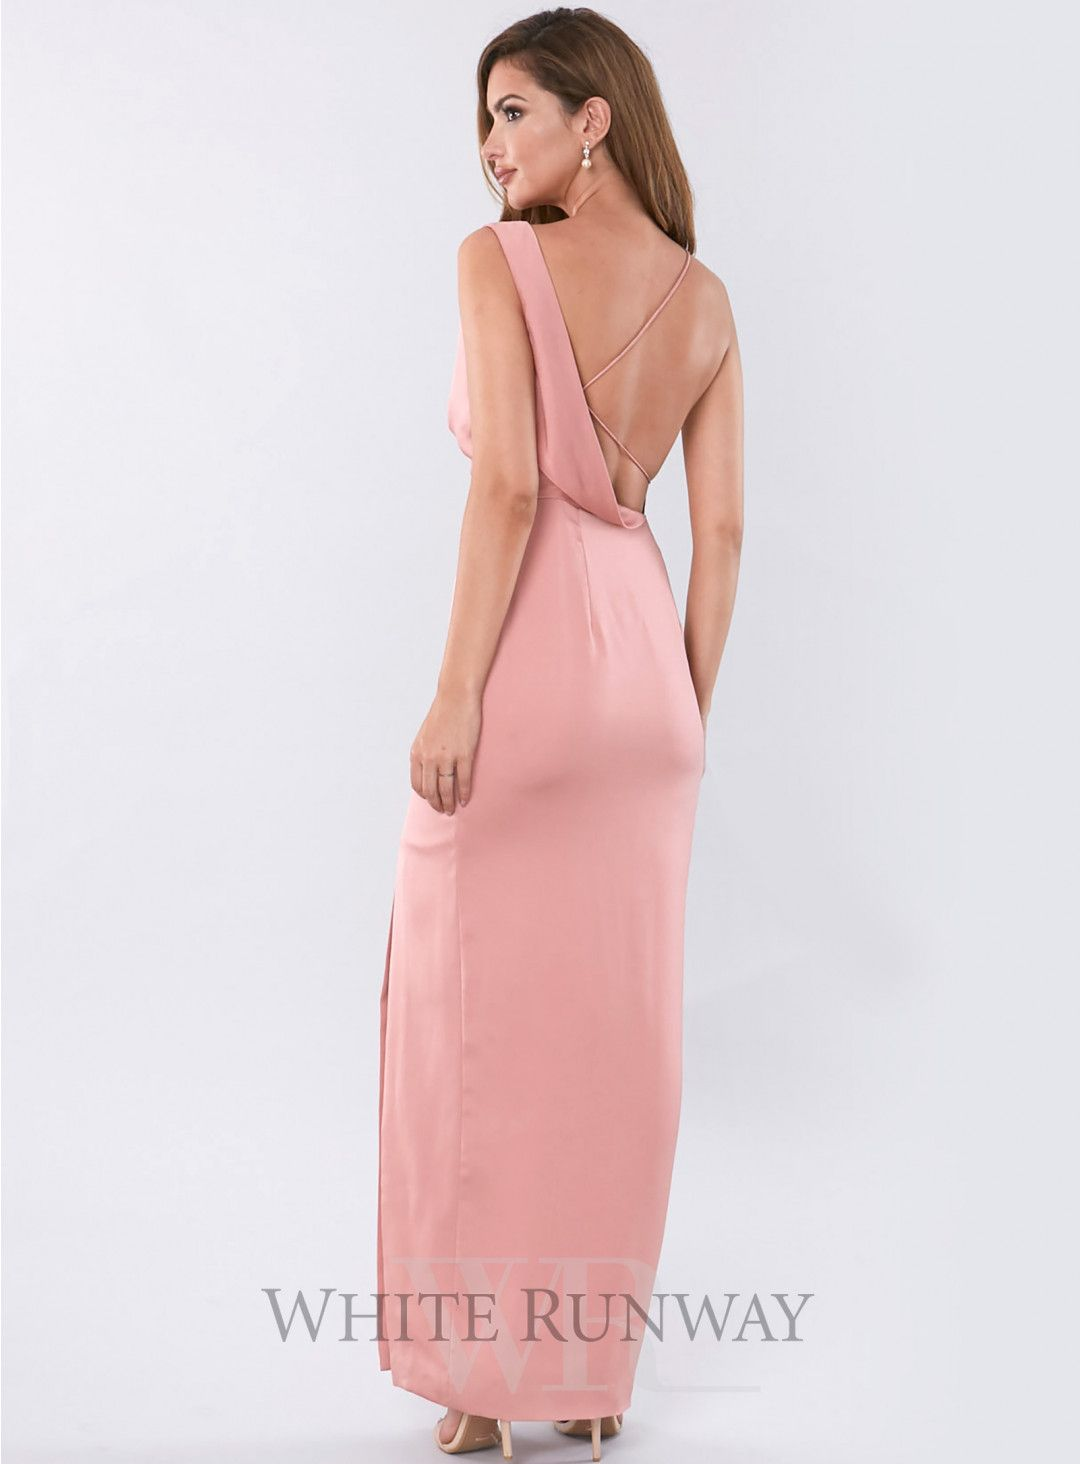 Sidelines gown a gorgeous full length dress by keepsake the label